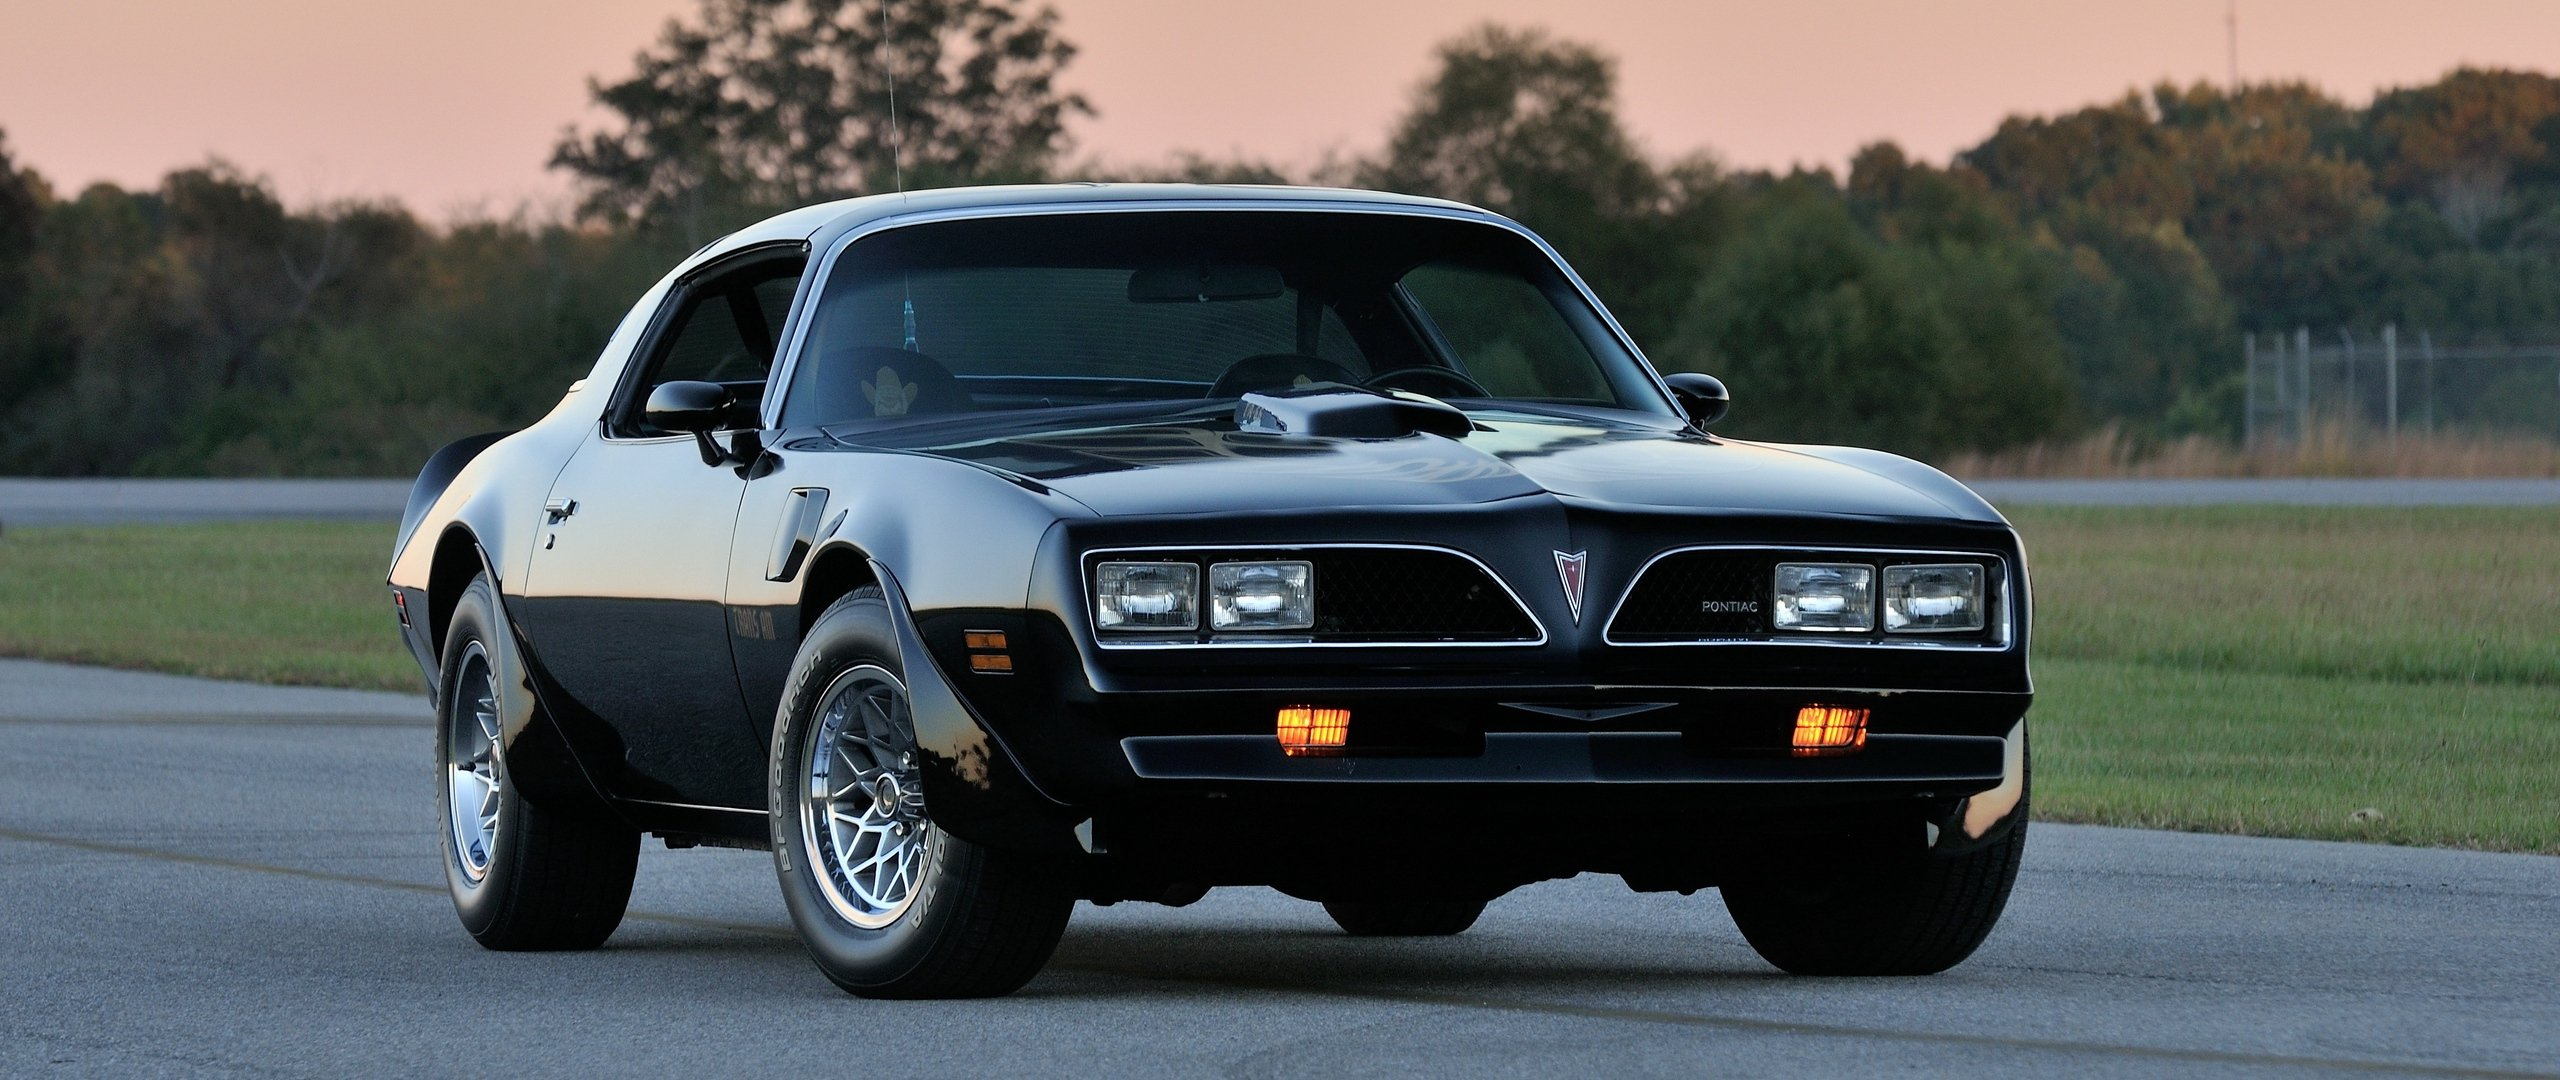 Download wallpaper 2560x1080 pontiac firebird trans am ws6 dual 2560x1080